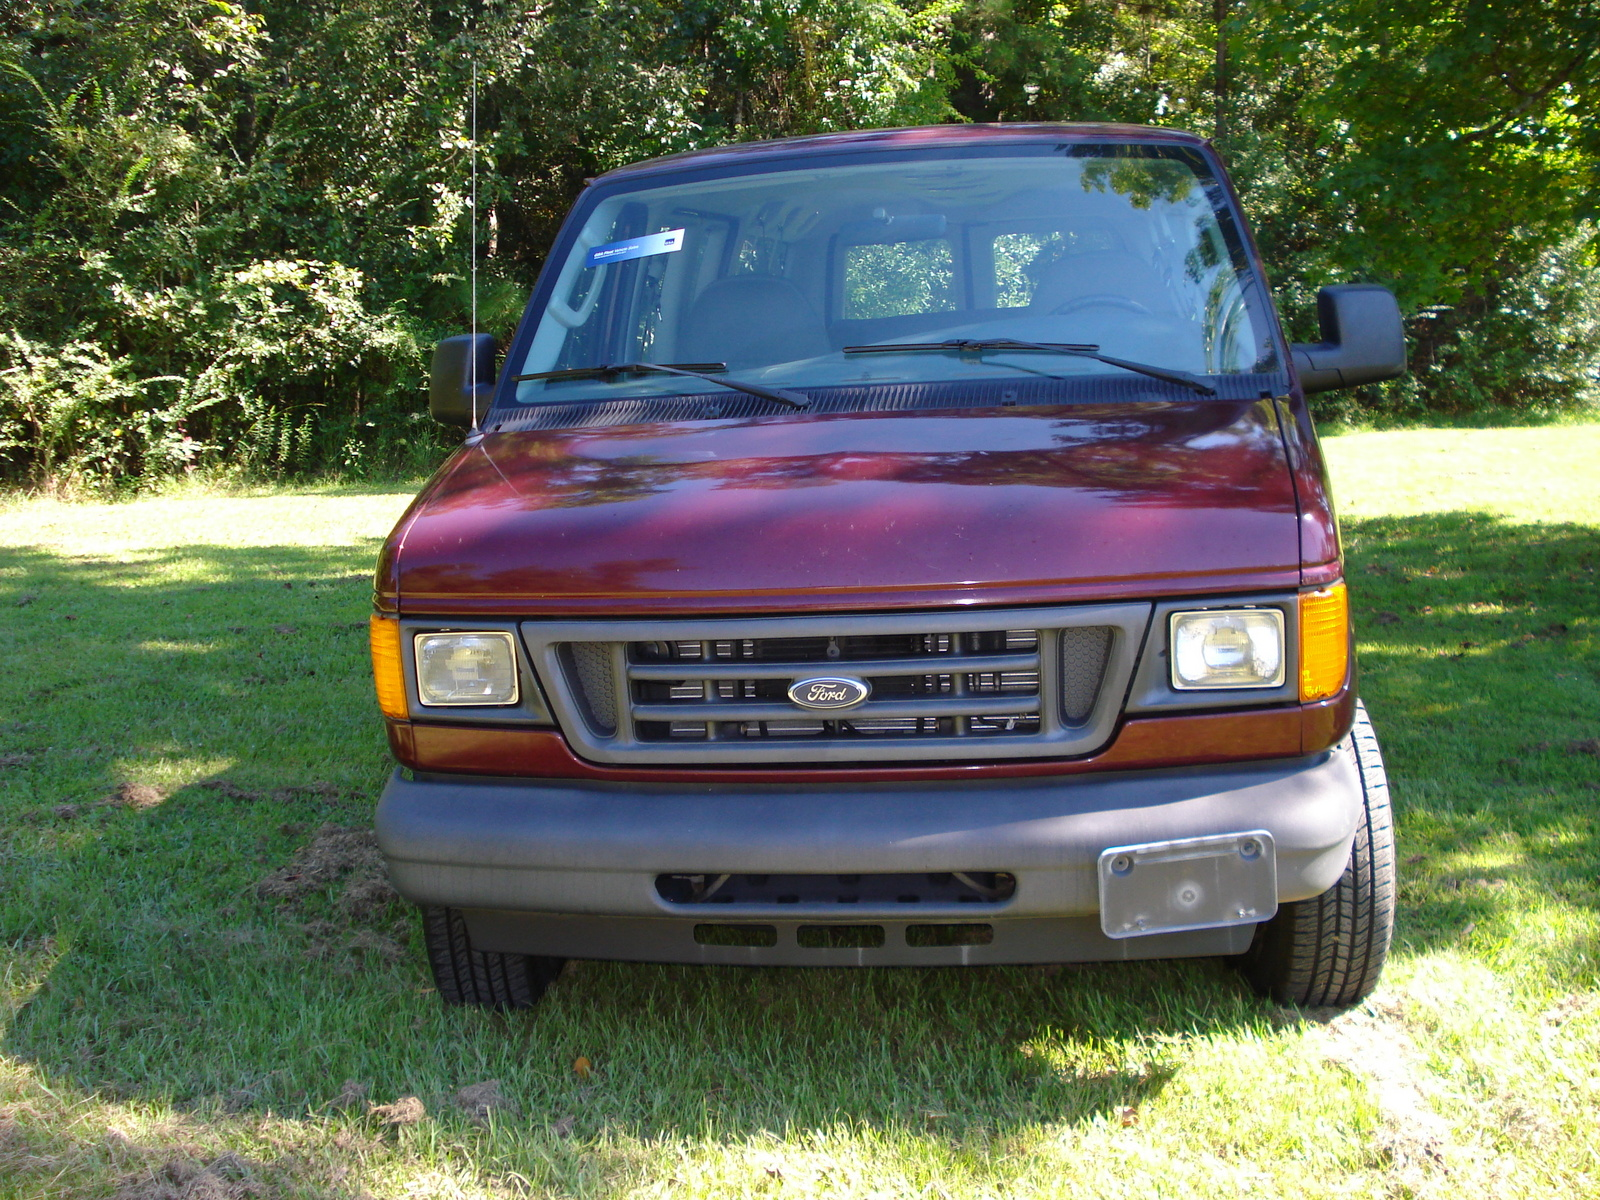 Picture of 2004 Ford Econoline Wagon 3 Dr E-150 XL Passenger Van